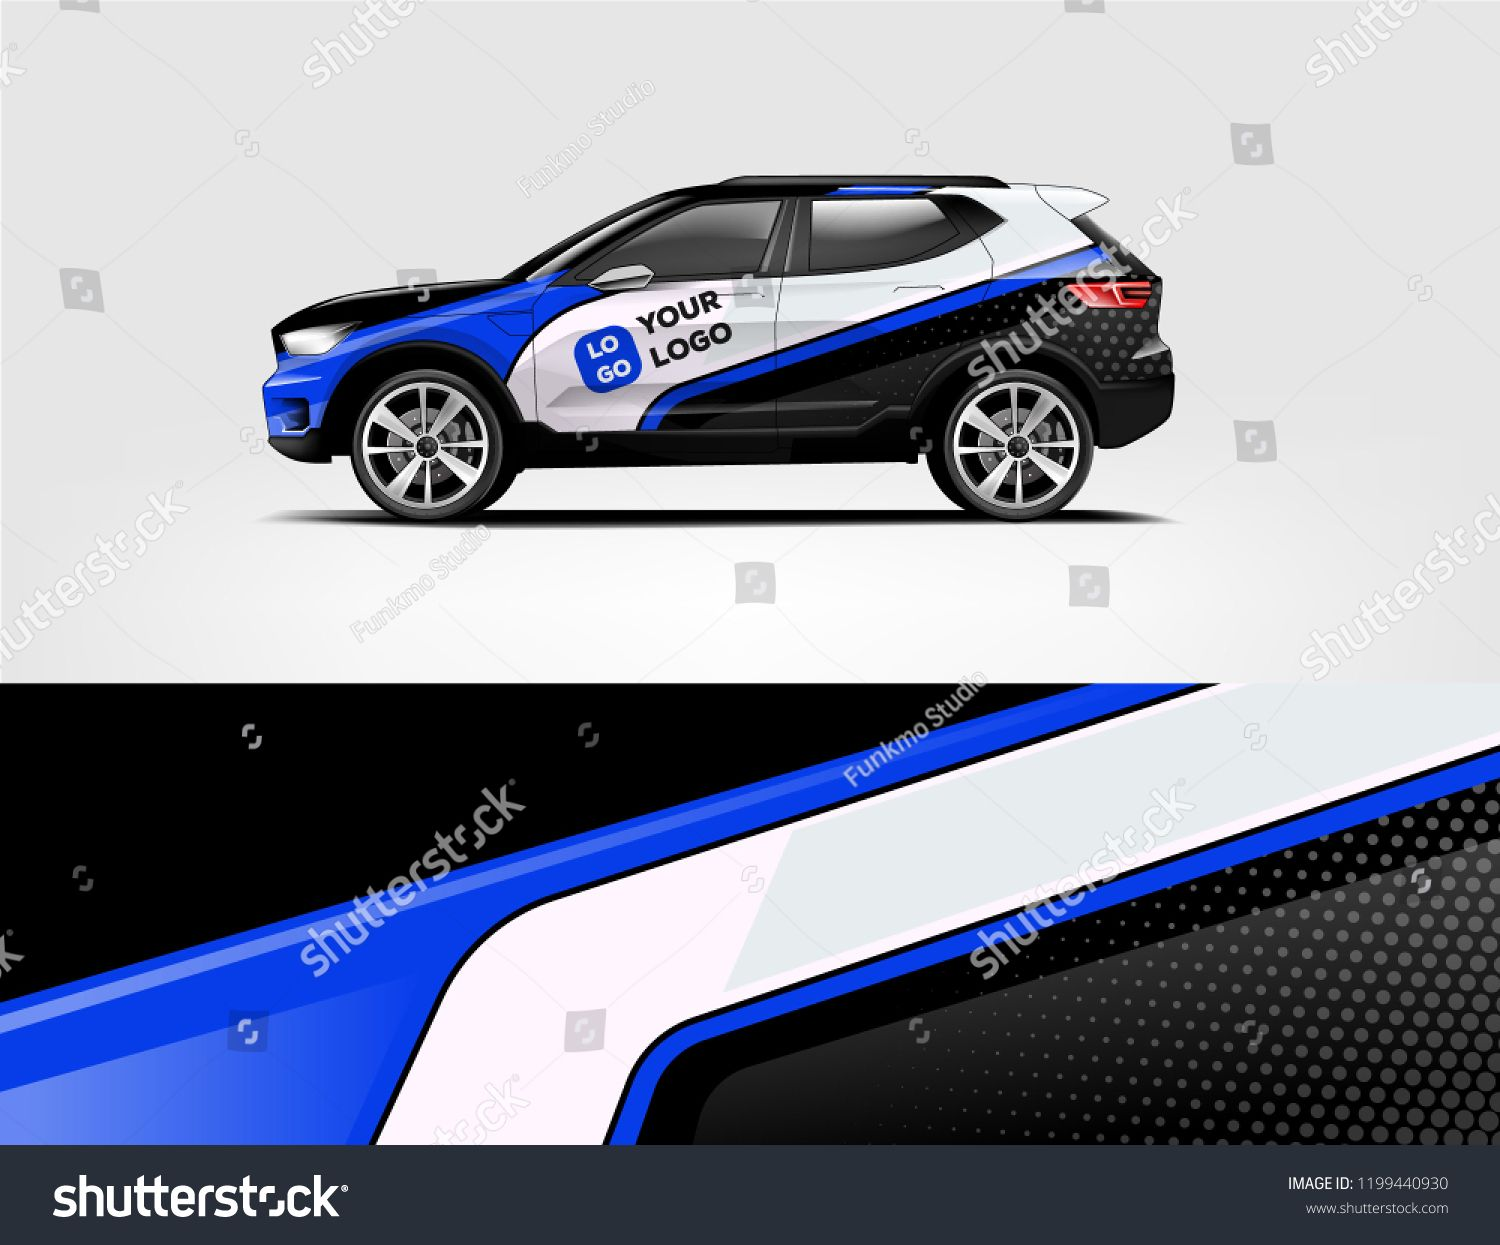 Company Branding Car Decal Wrap Design Vector Graphic Abstract Stripe Racing Background Kit Designs Company Car Company Branding Car Car Decals [ 1245 x 1500 Pixel ]